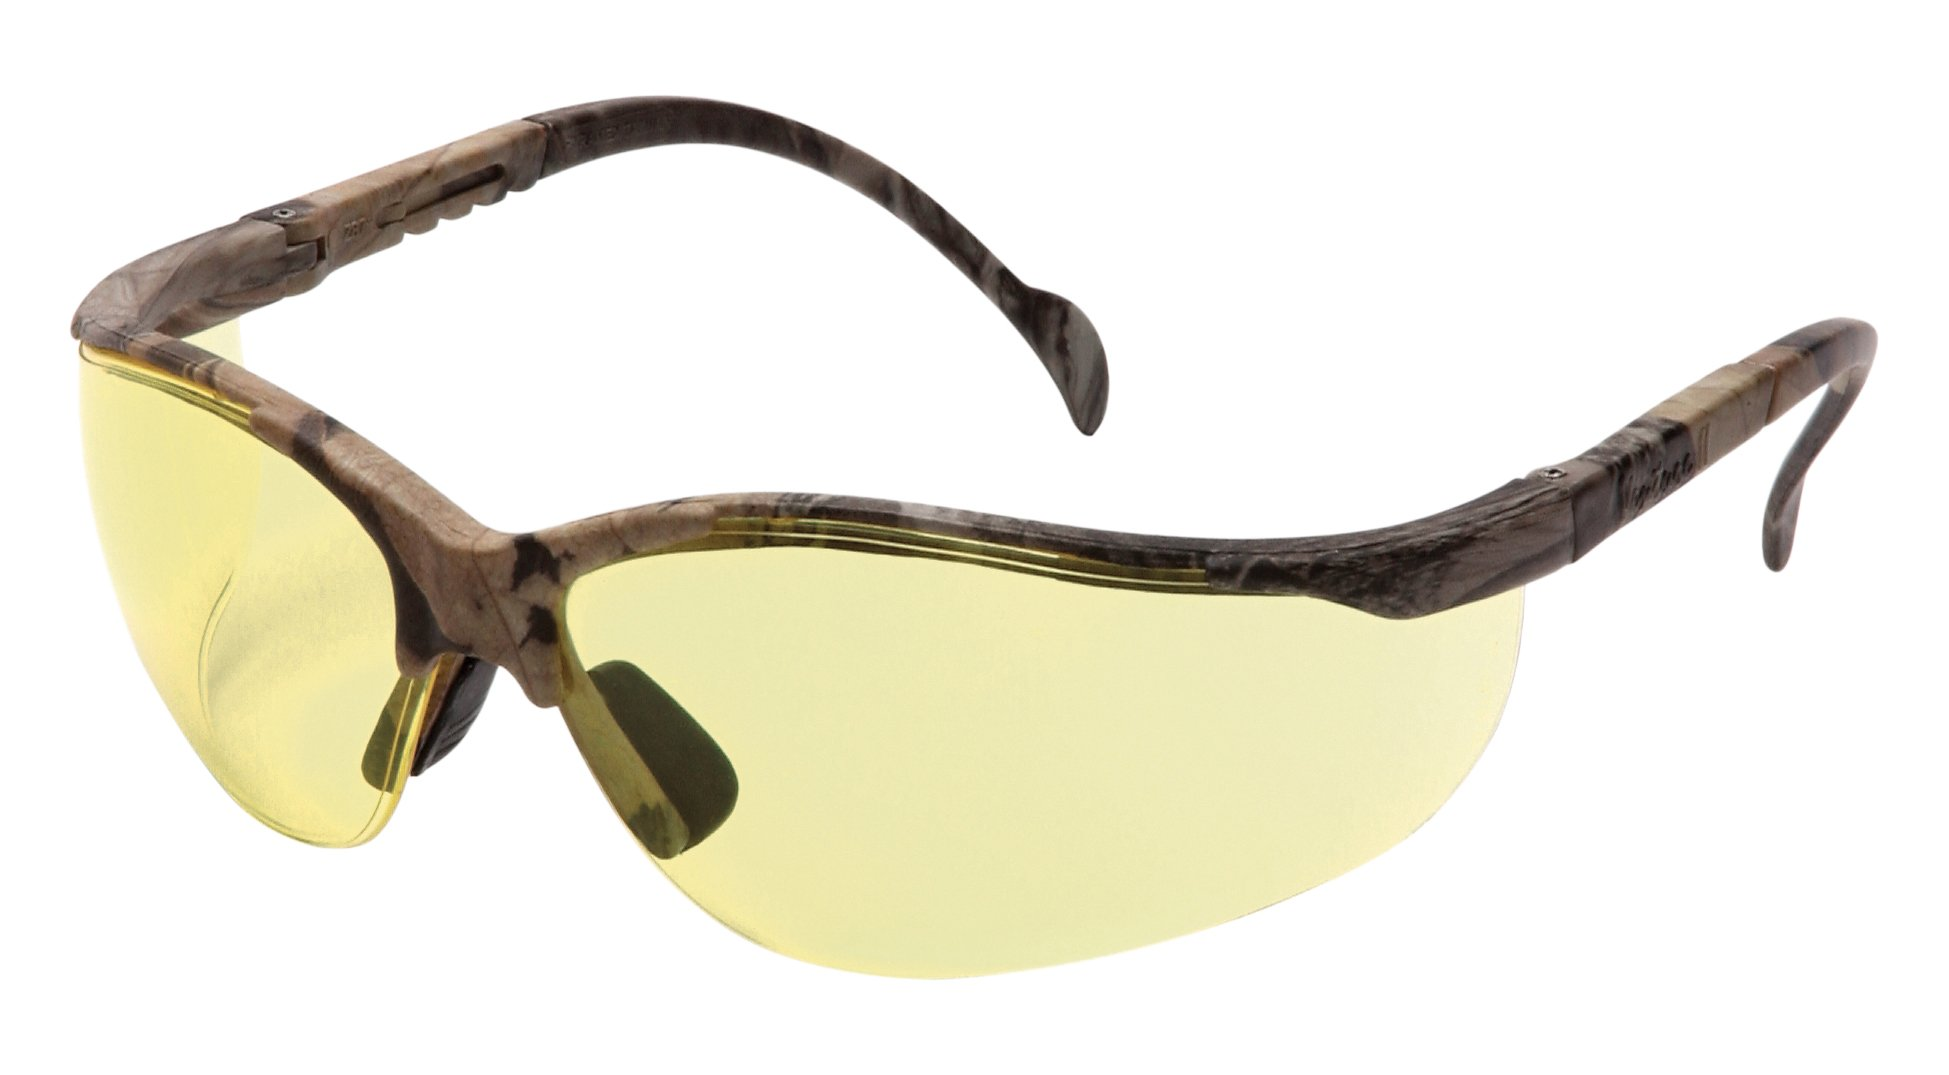 Pyramex Venture Ii Safety Eyewear, Amber Lens With Realtree Hardwoods Hd Frame by Pyramex Safety